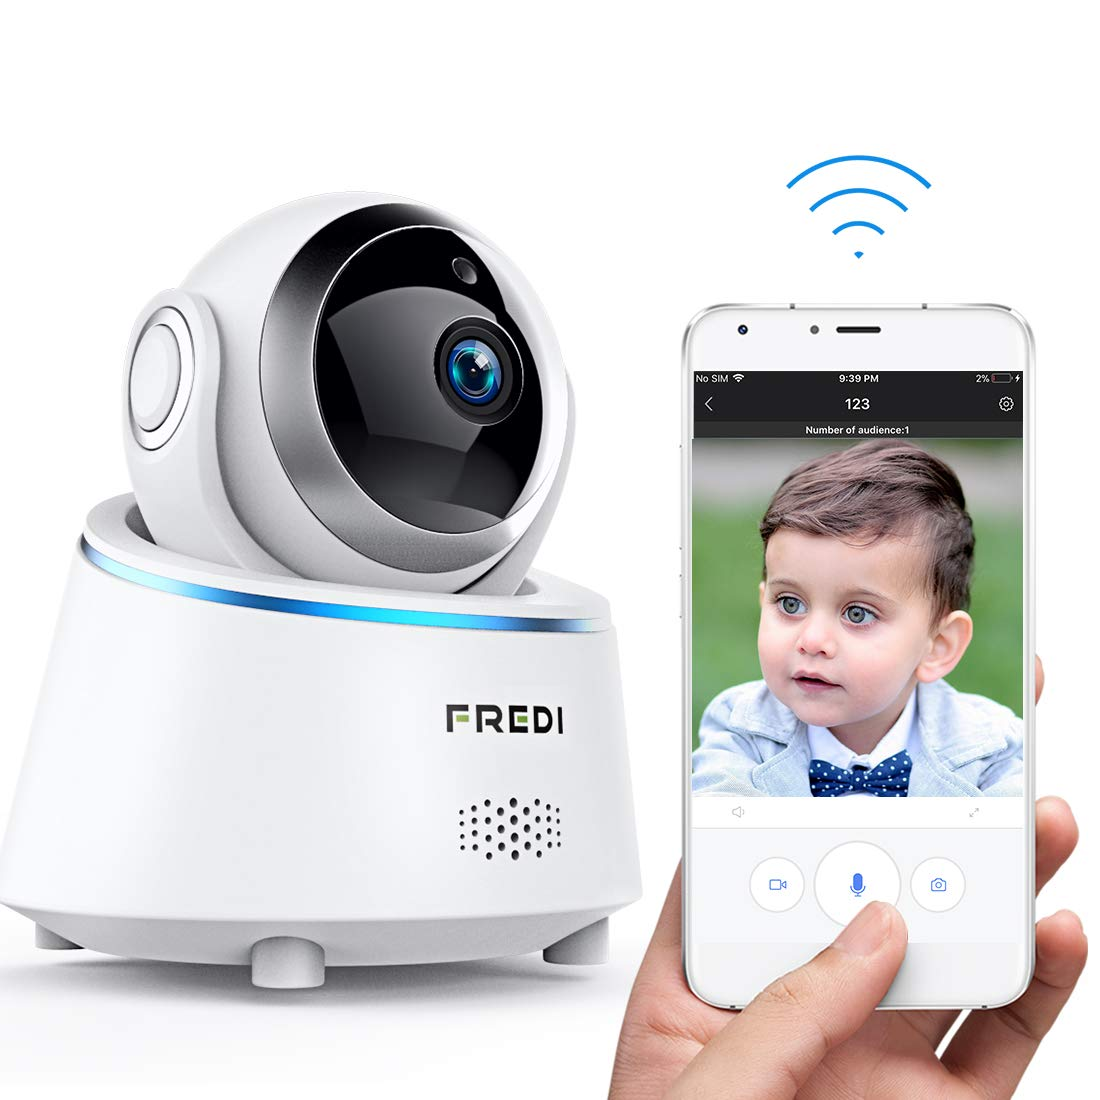 FREDI Wifi Security Camera,Wireless Baby monitor Camera 1080P,Security Ip Camera For Home,Dog Camera Monitor With Two…